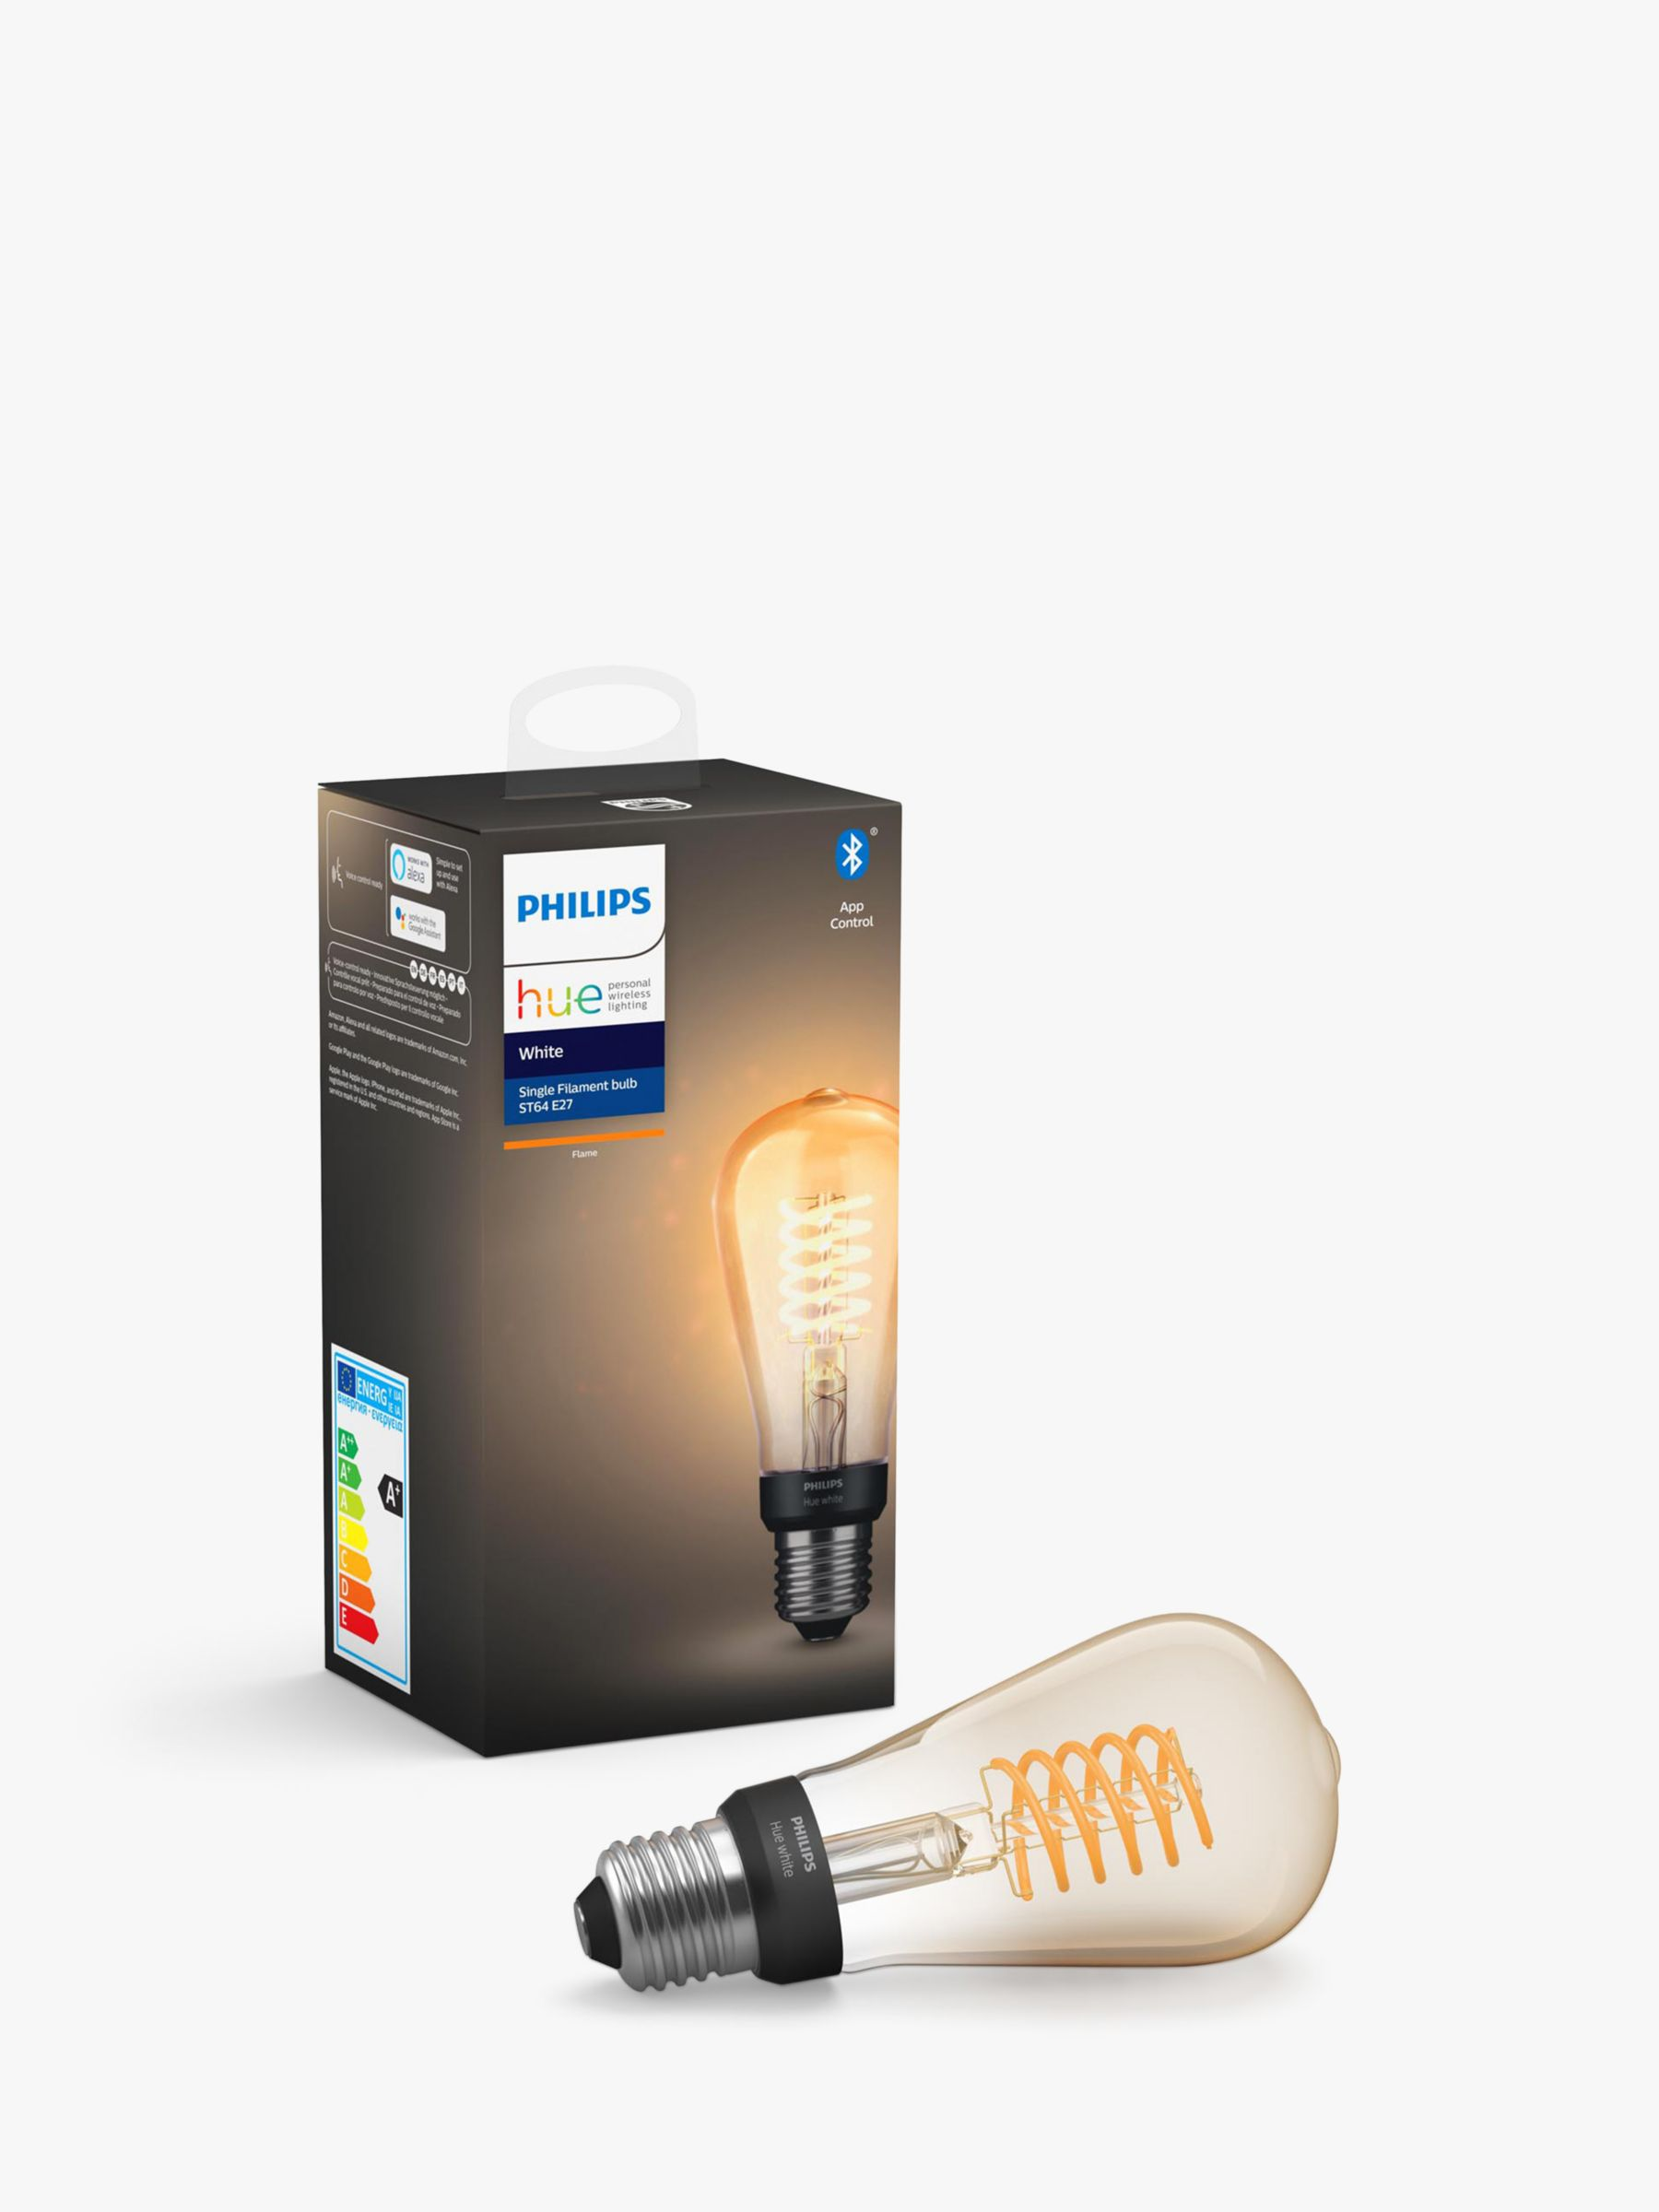 Philips Philips Hue White Ambiance Wireless Lighting 7W ES LED Dimmable Filament Bulb, ST64 E27